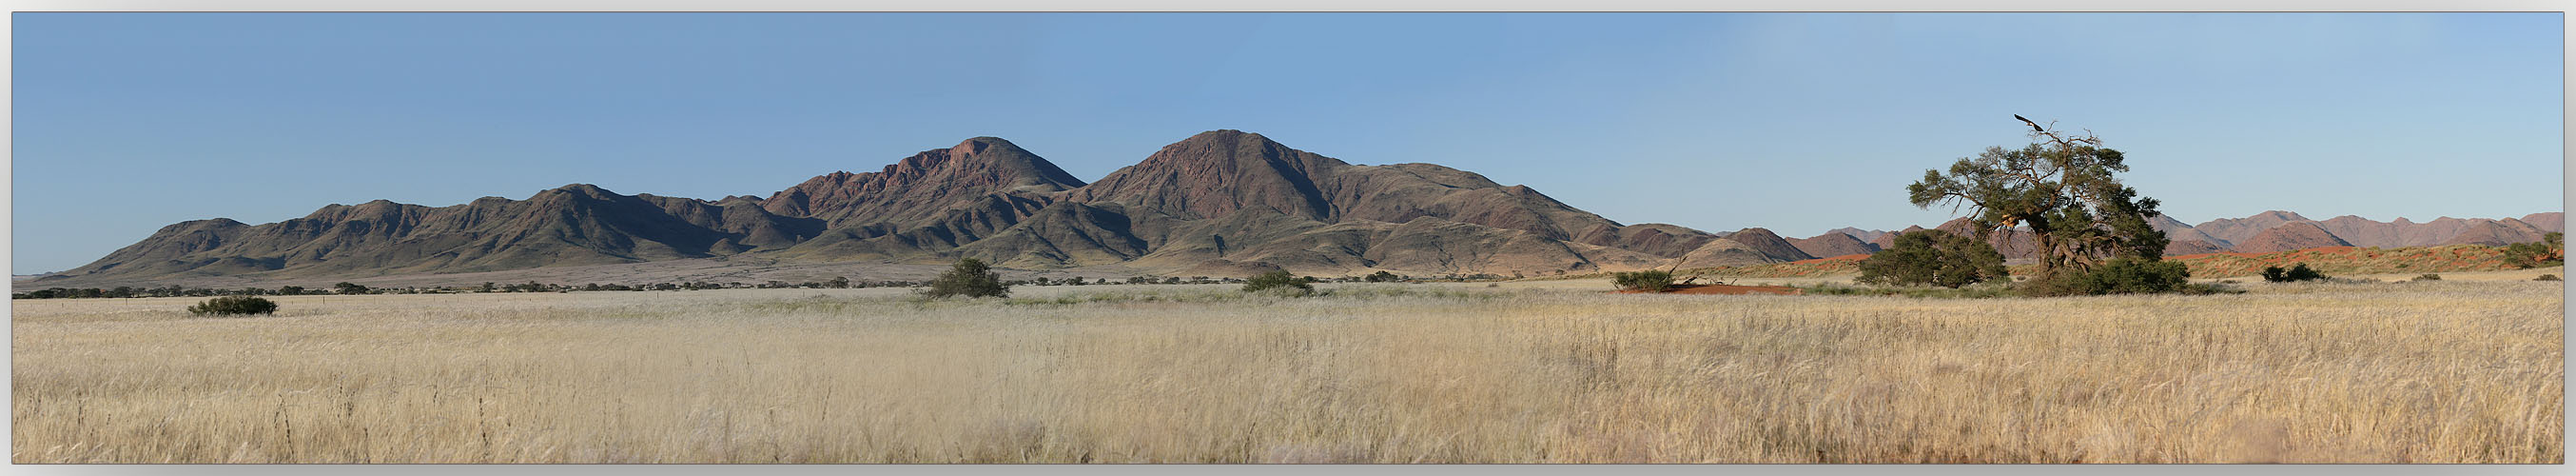 Steppe in Namibia